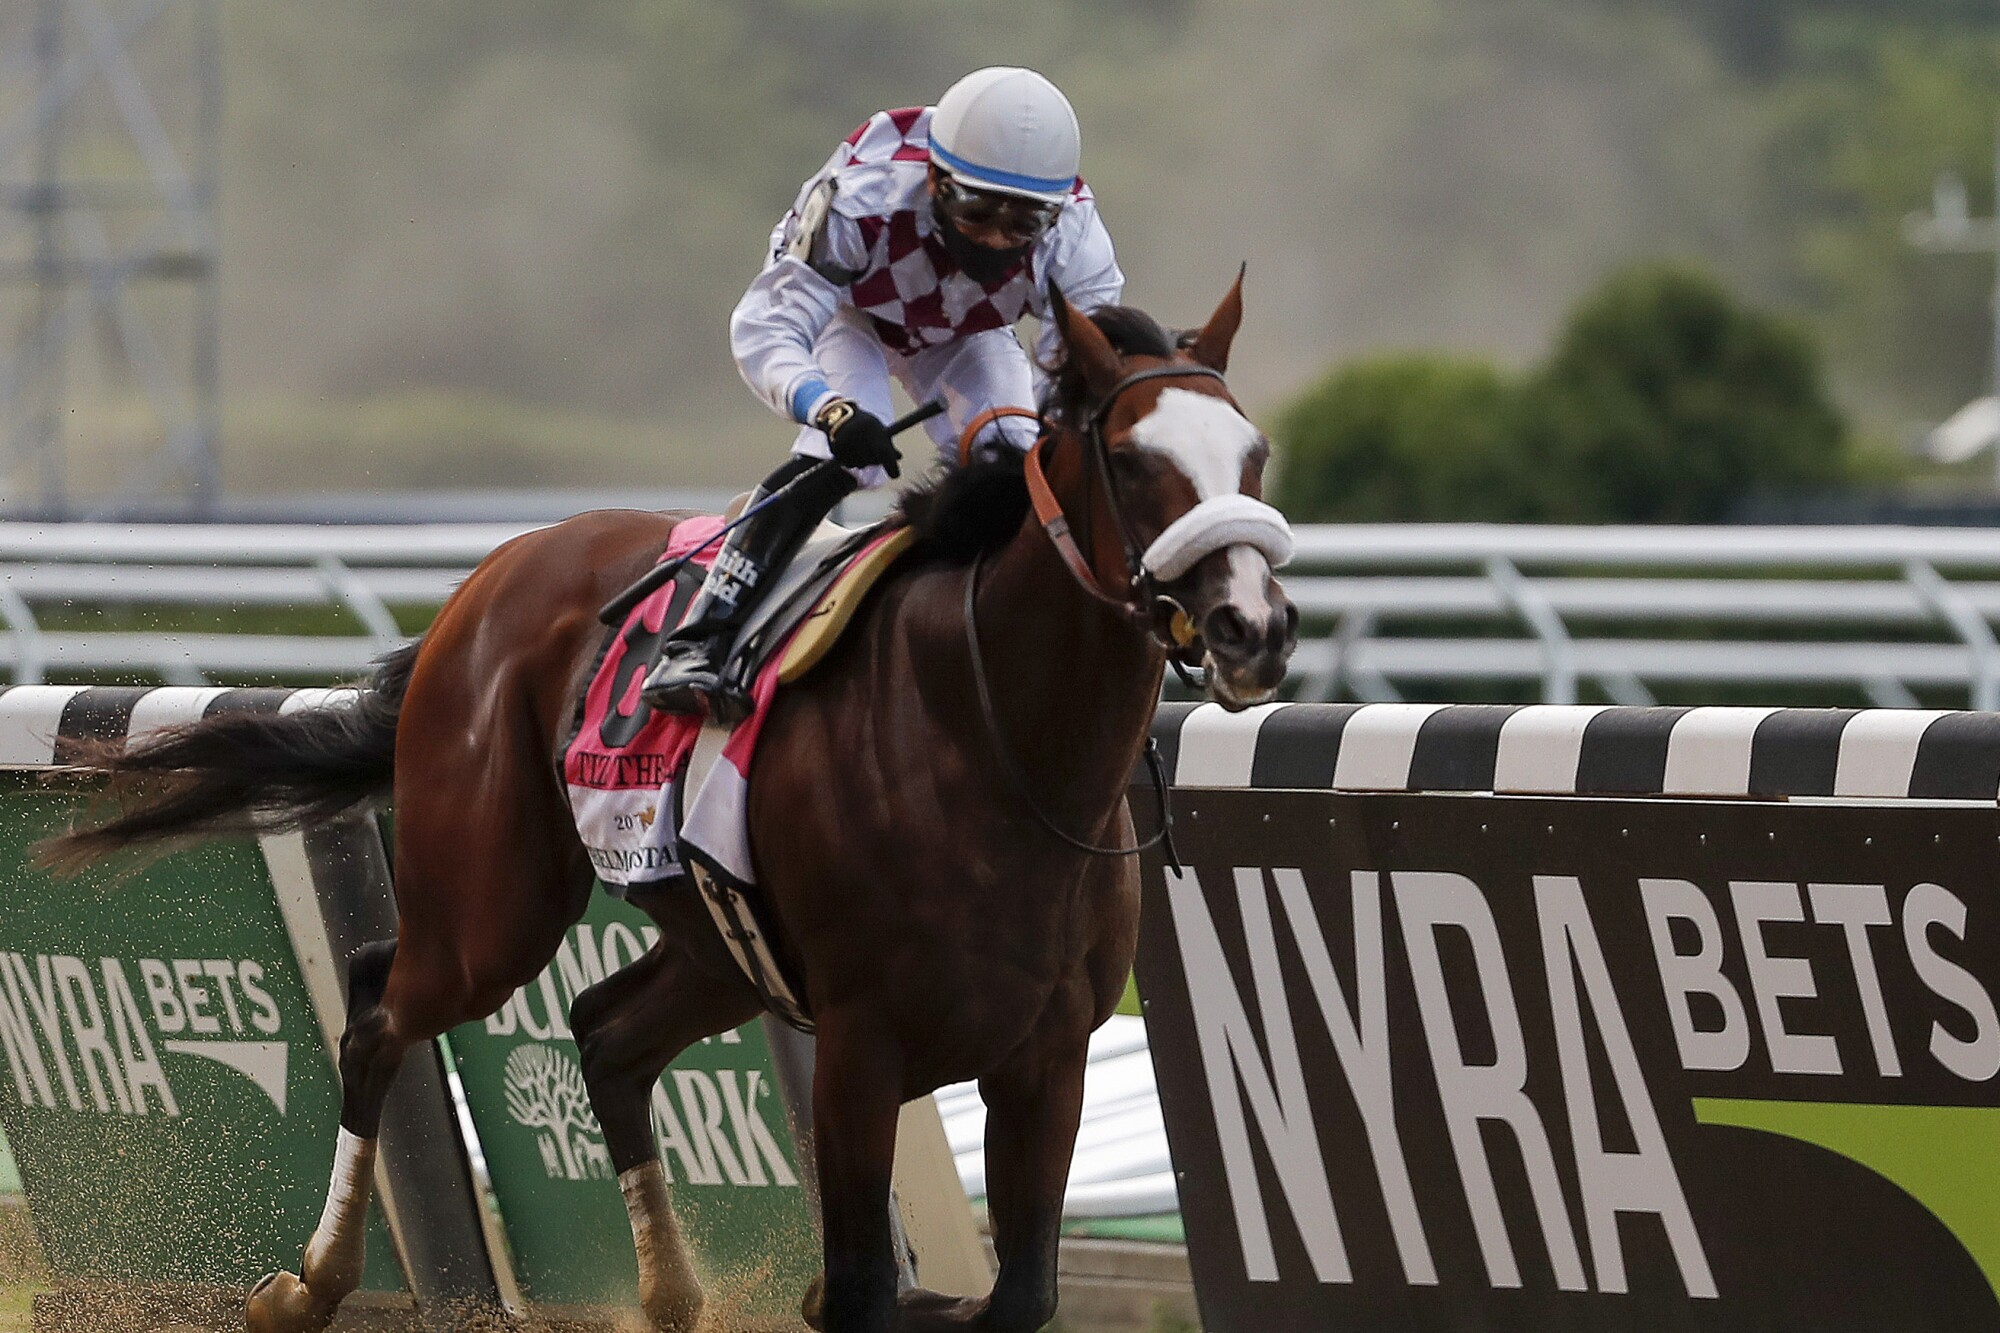 Tiz The Law (8), with jockey Manny Franco aboard, wins the152nd running of the Belmont Stakes horse race.